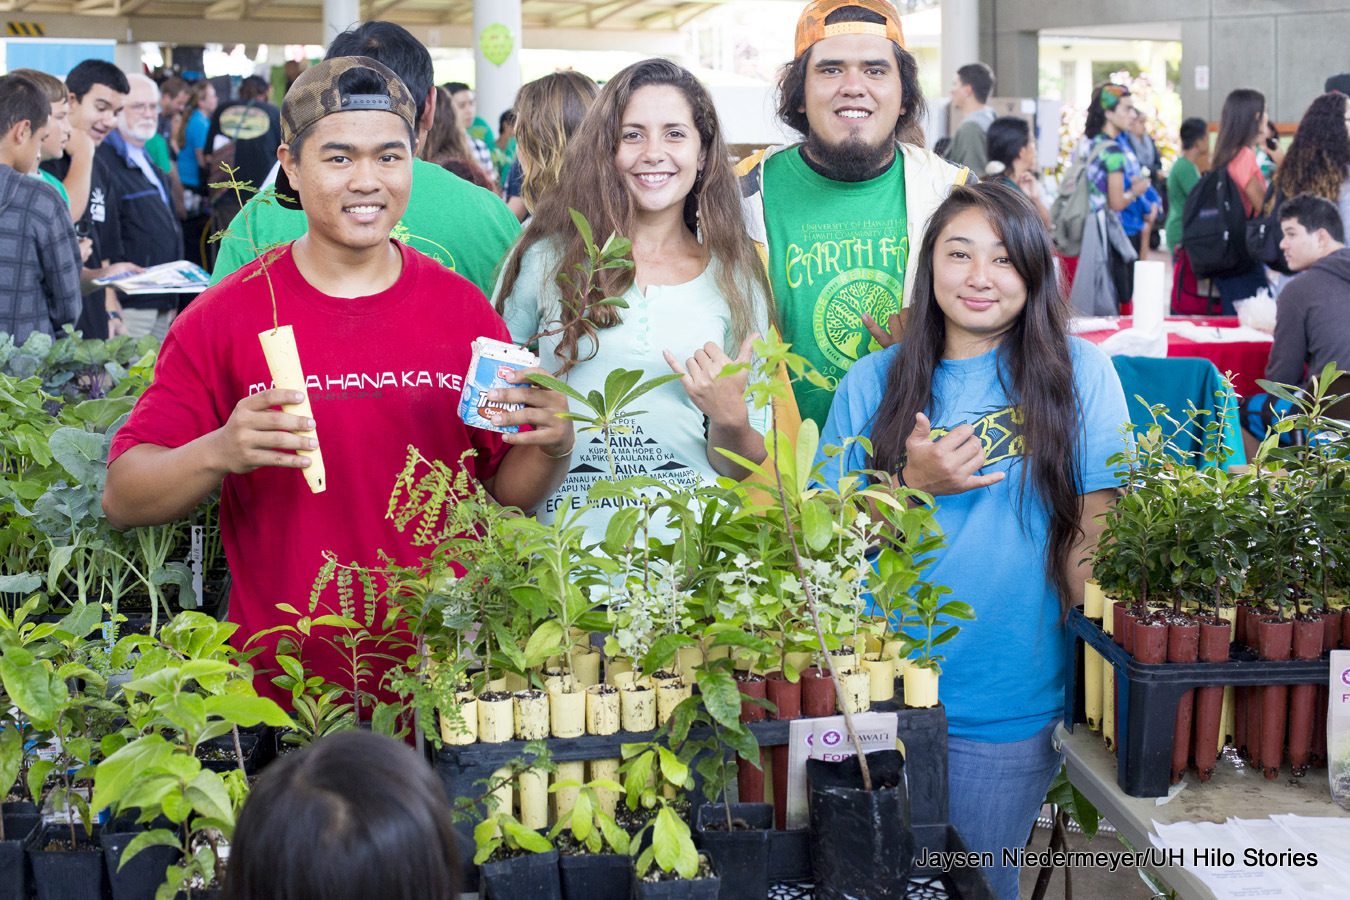 Four university students tending an agricultural booth during the Earth Fair, UH Hilo. One student is holding seedlings from a tray in the booth full of seedlings..